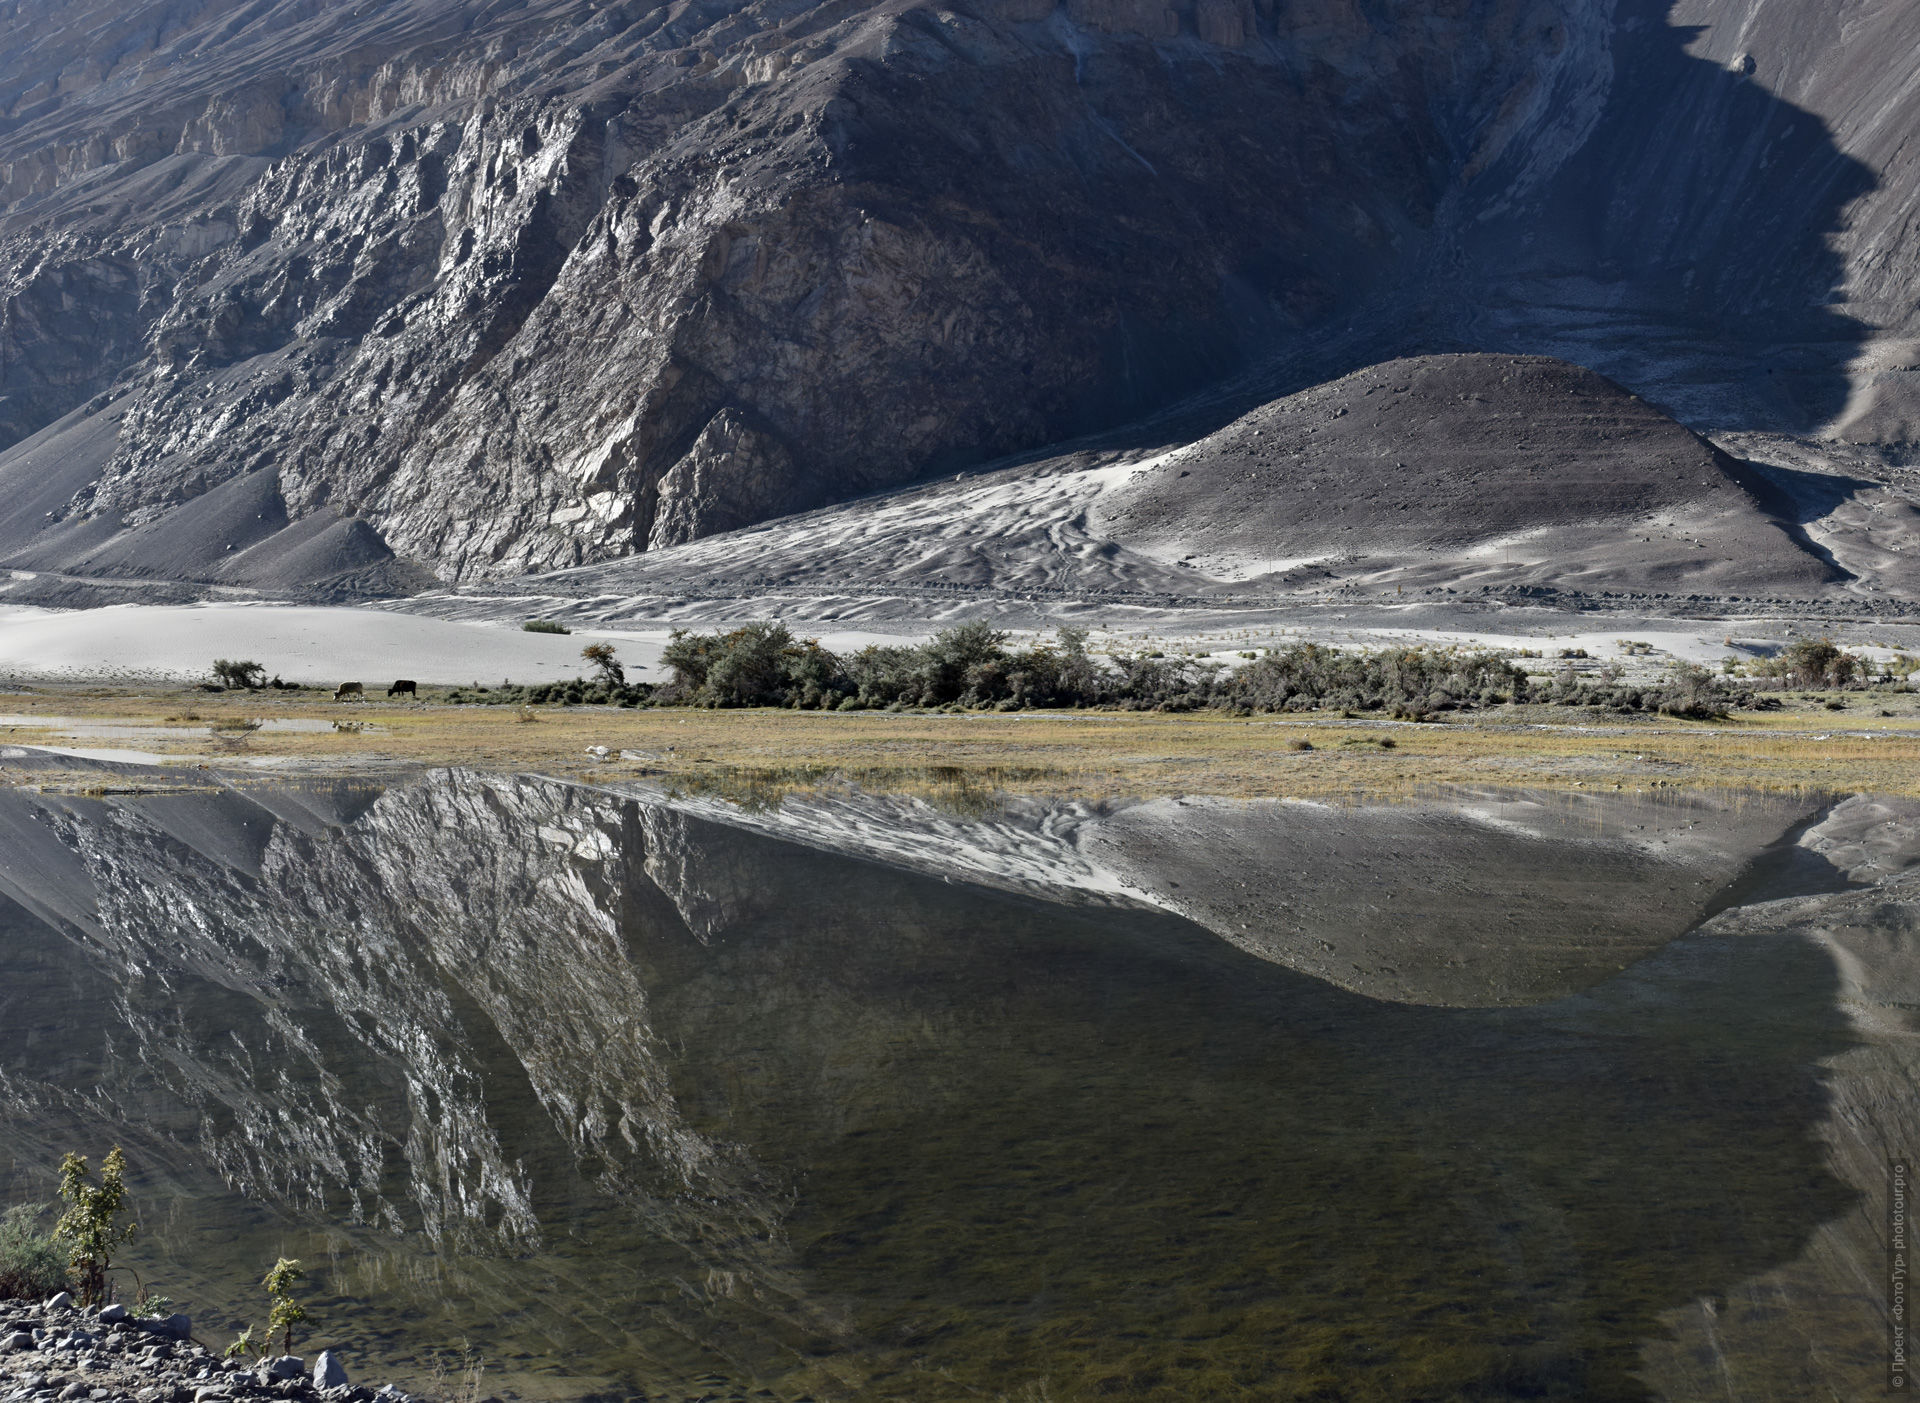 Lake in the Nubra Valley. Expedition Tibet Lake-2: Pangong, Tso Moriri, Tso Kar, Tso Startsapak, Leh-Manali highway.